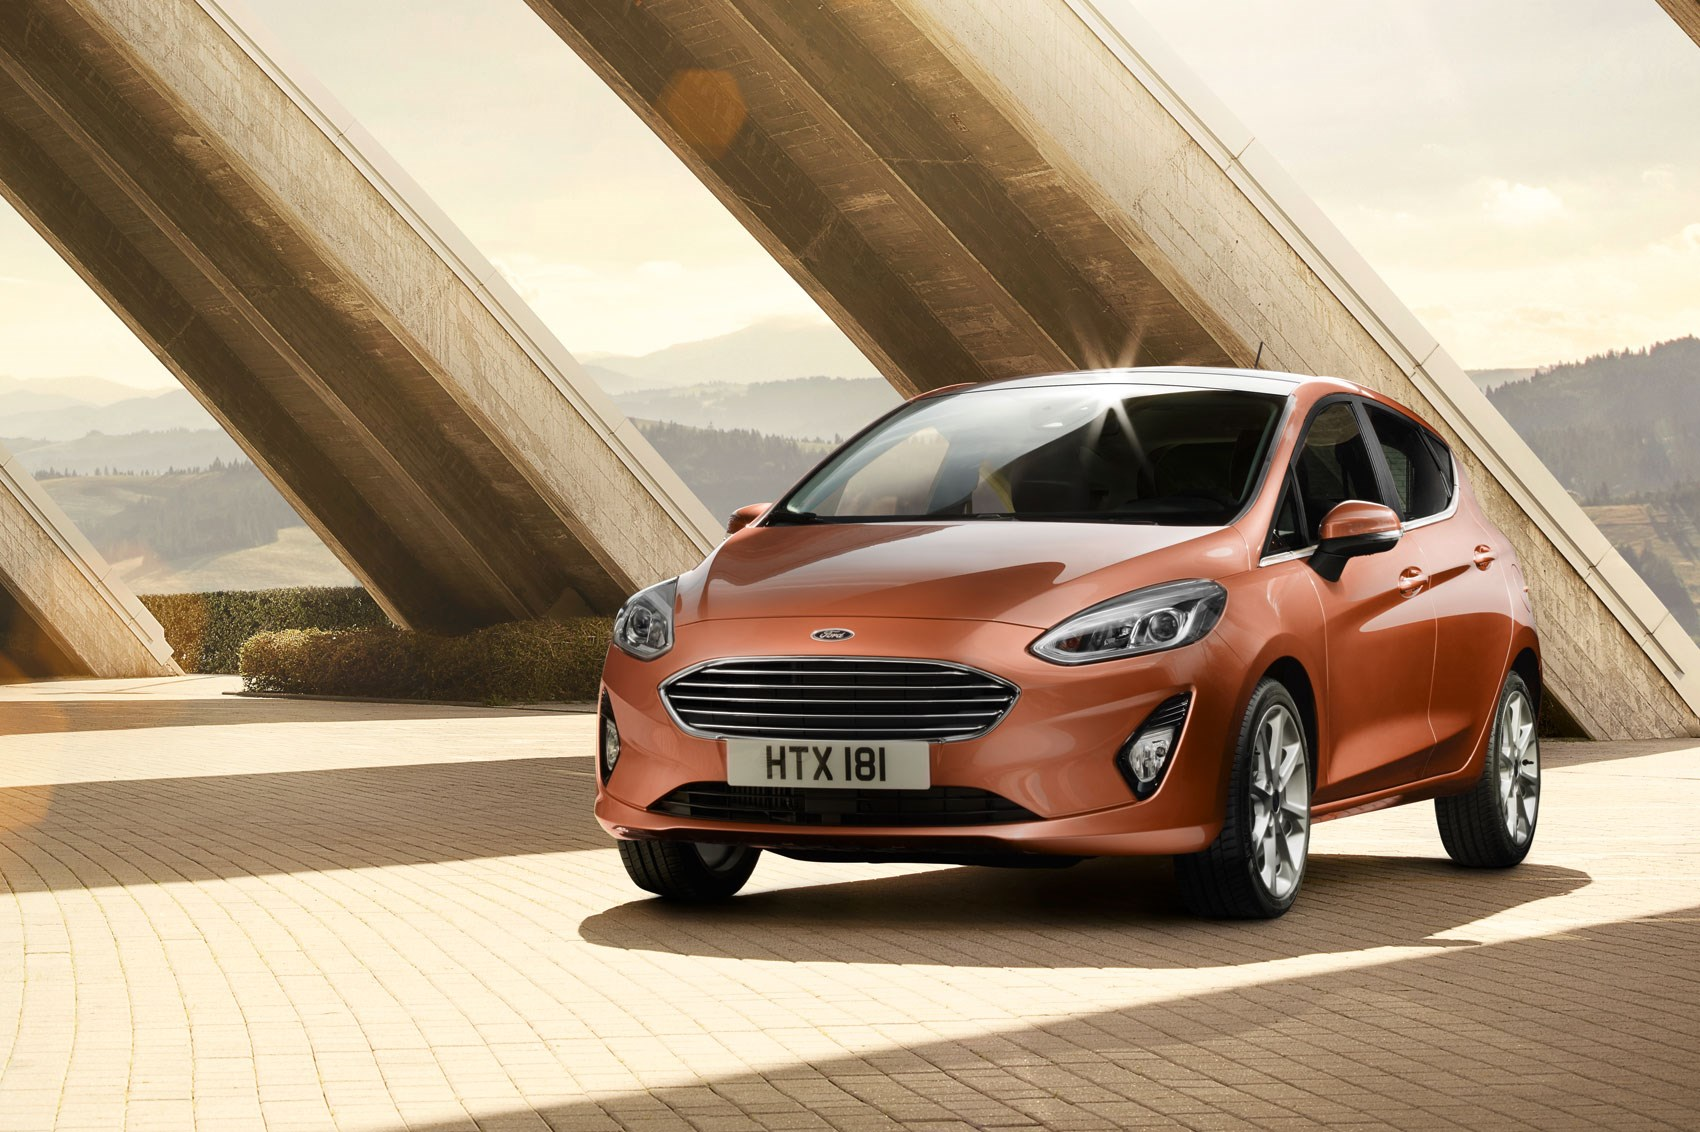 The Ford Go Further 2016 Event It S World Debut Of Mk7 Fiesta New